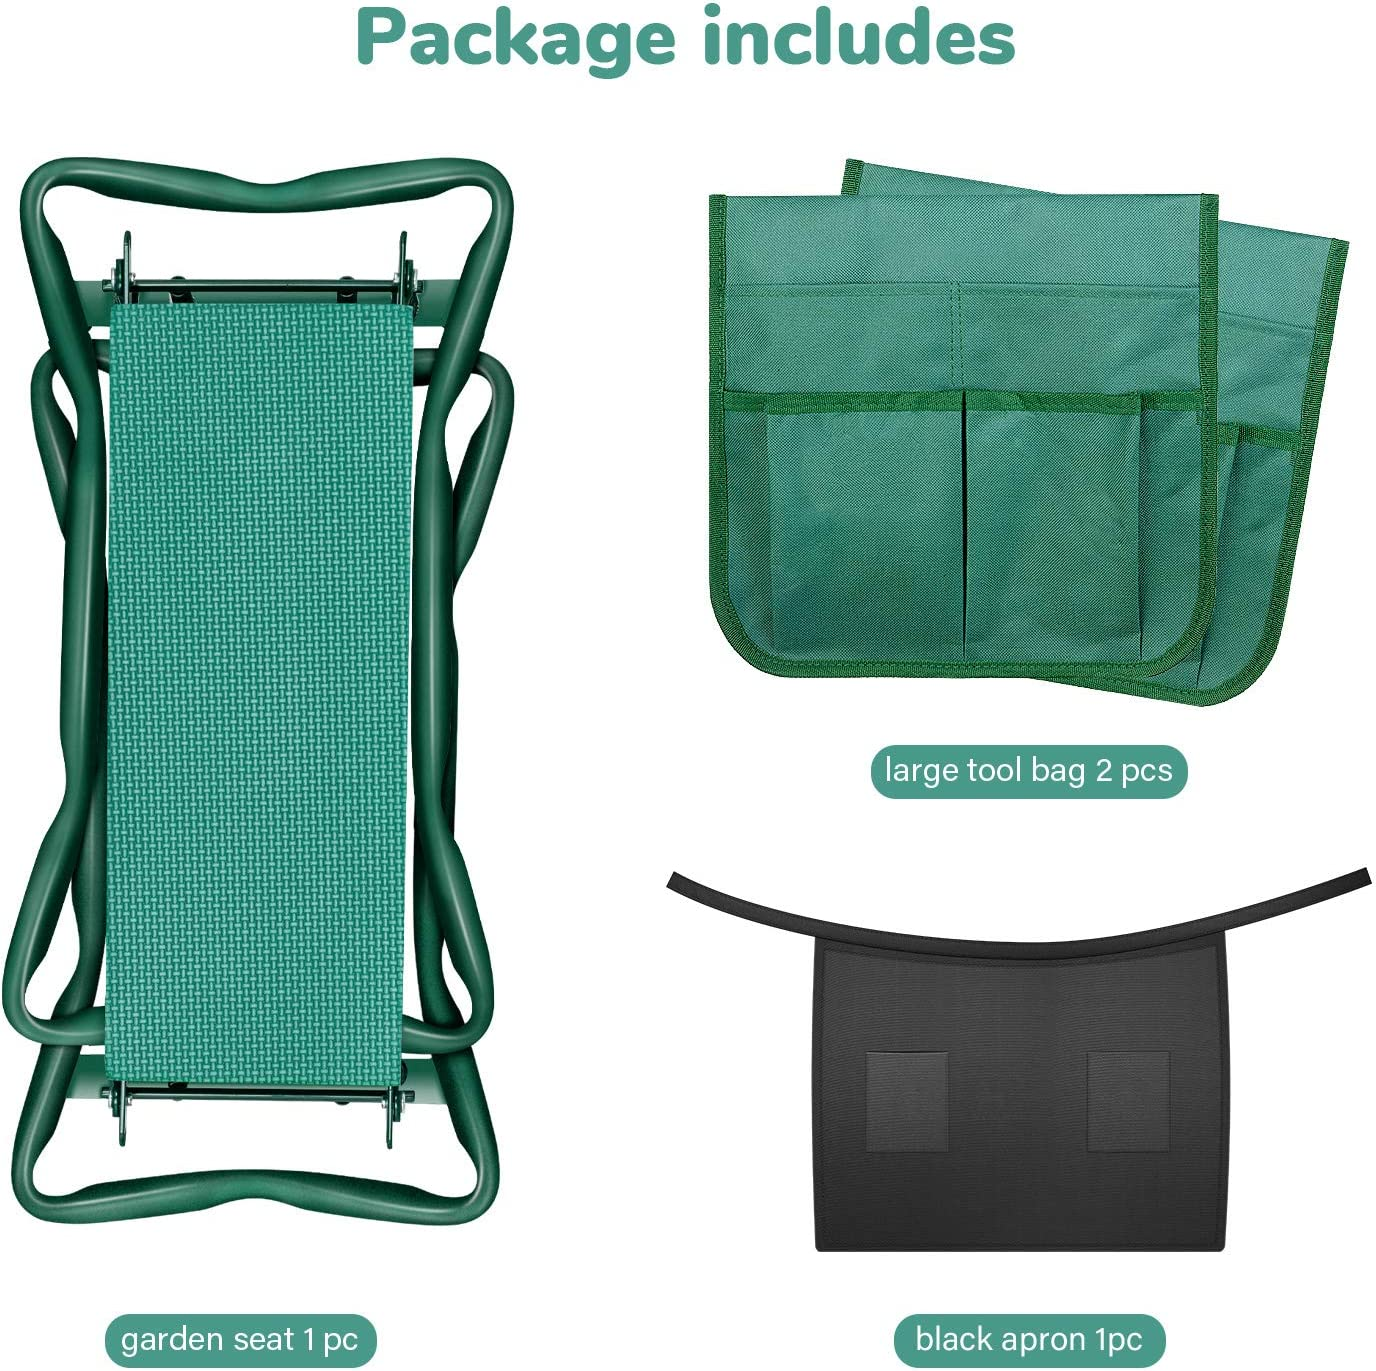 Fishing Green Camping 2 Big Tool Pouch iPower Portable Kneeler Seat Foldable Kneeling Bench with Sturdy Soft EVA Foam Pad for Outdoor Gardening and 1 Black Apron Included